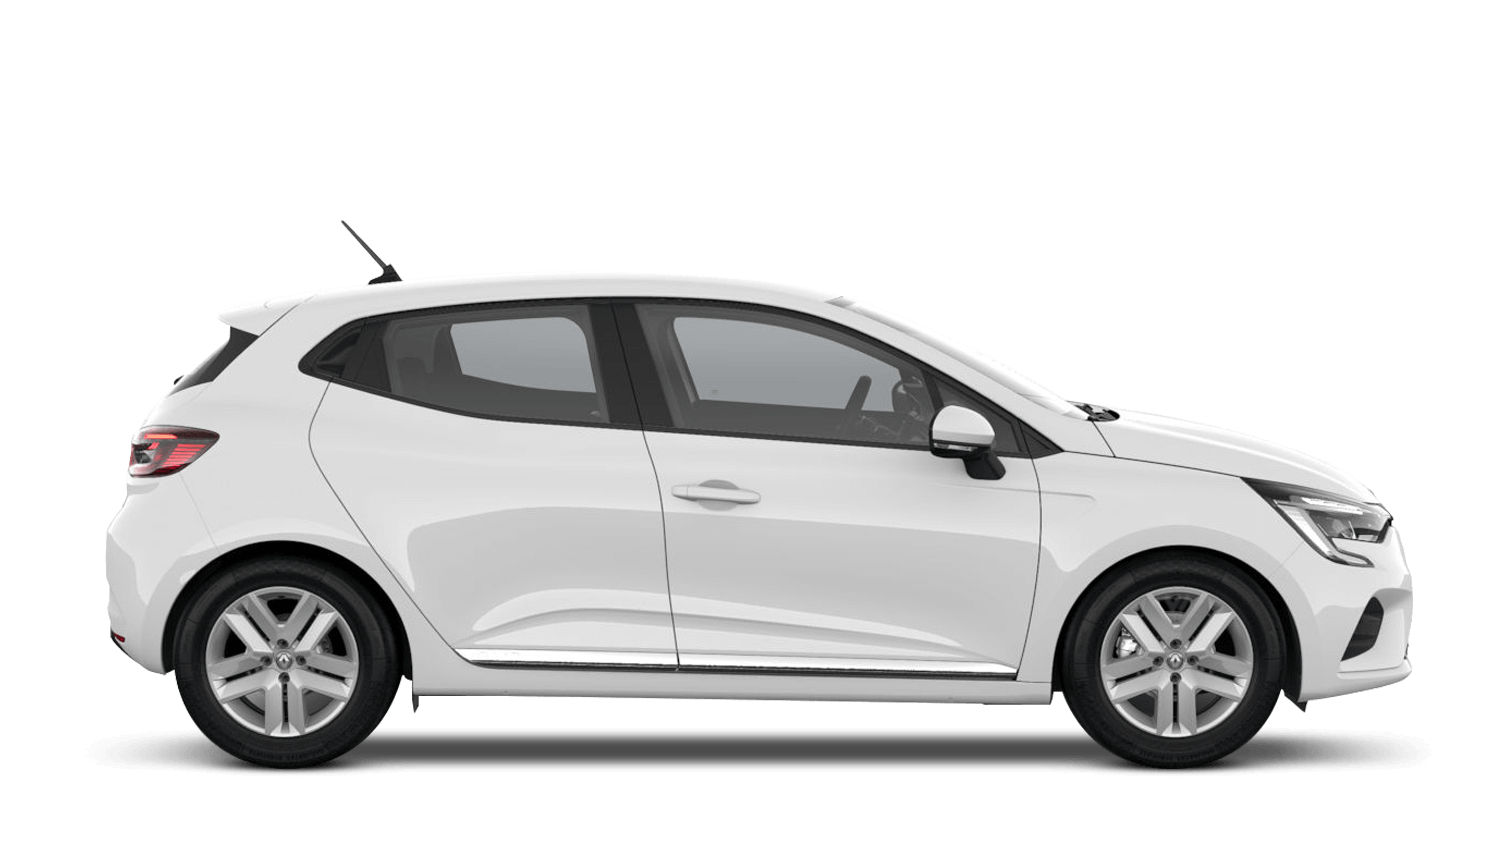 Glacier White All-New Renault CLIO